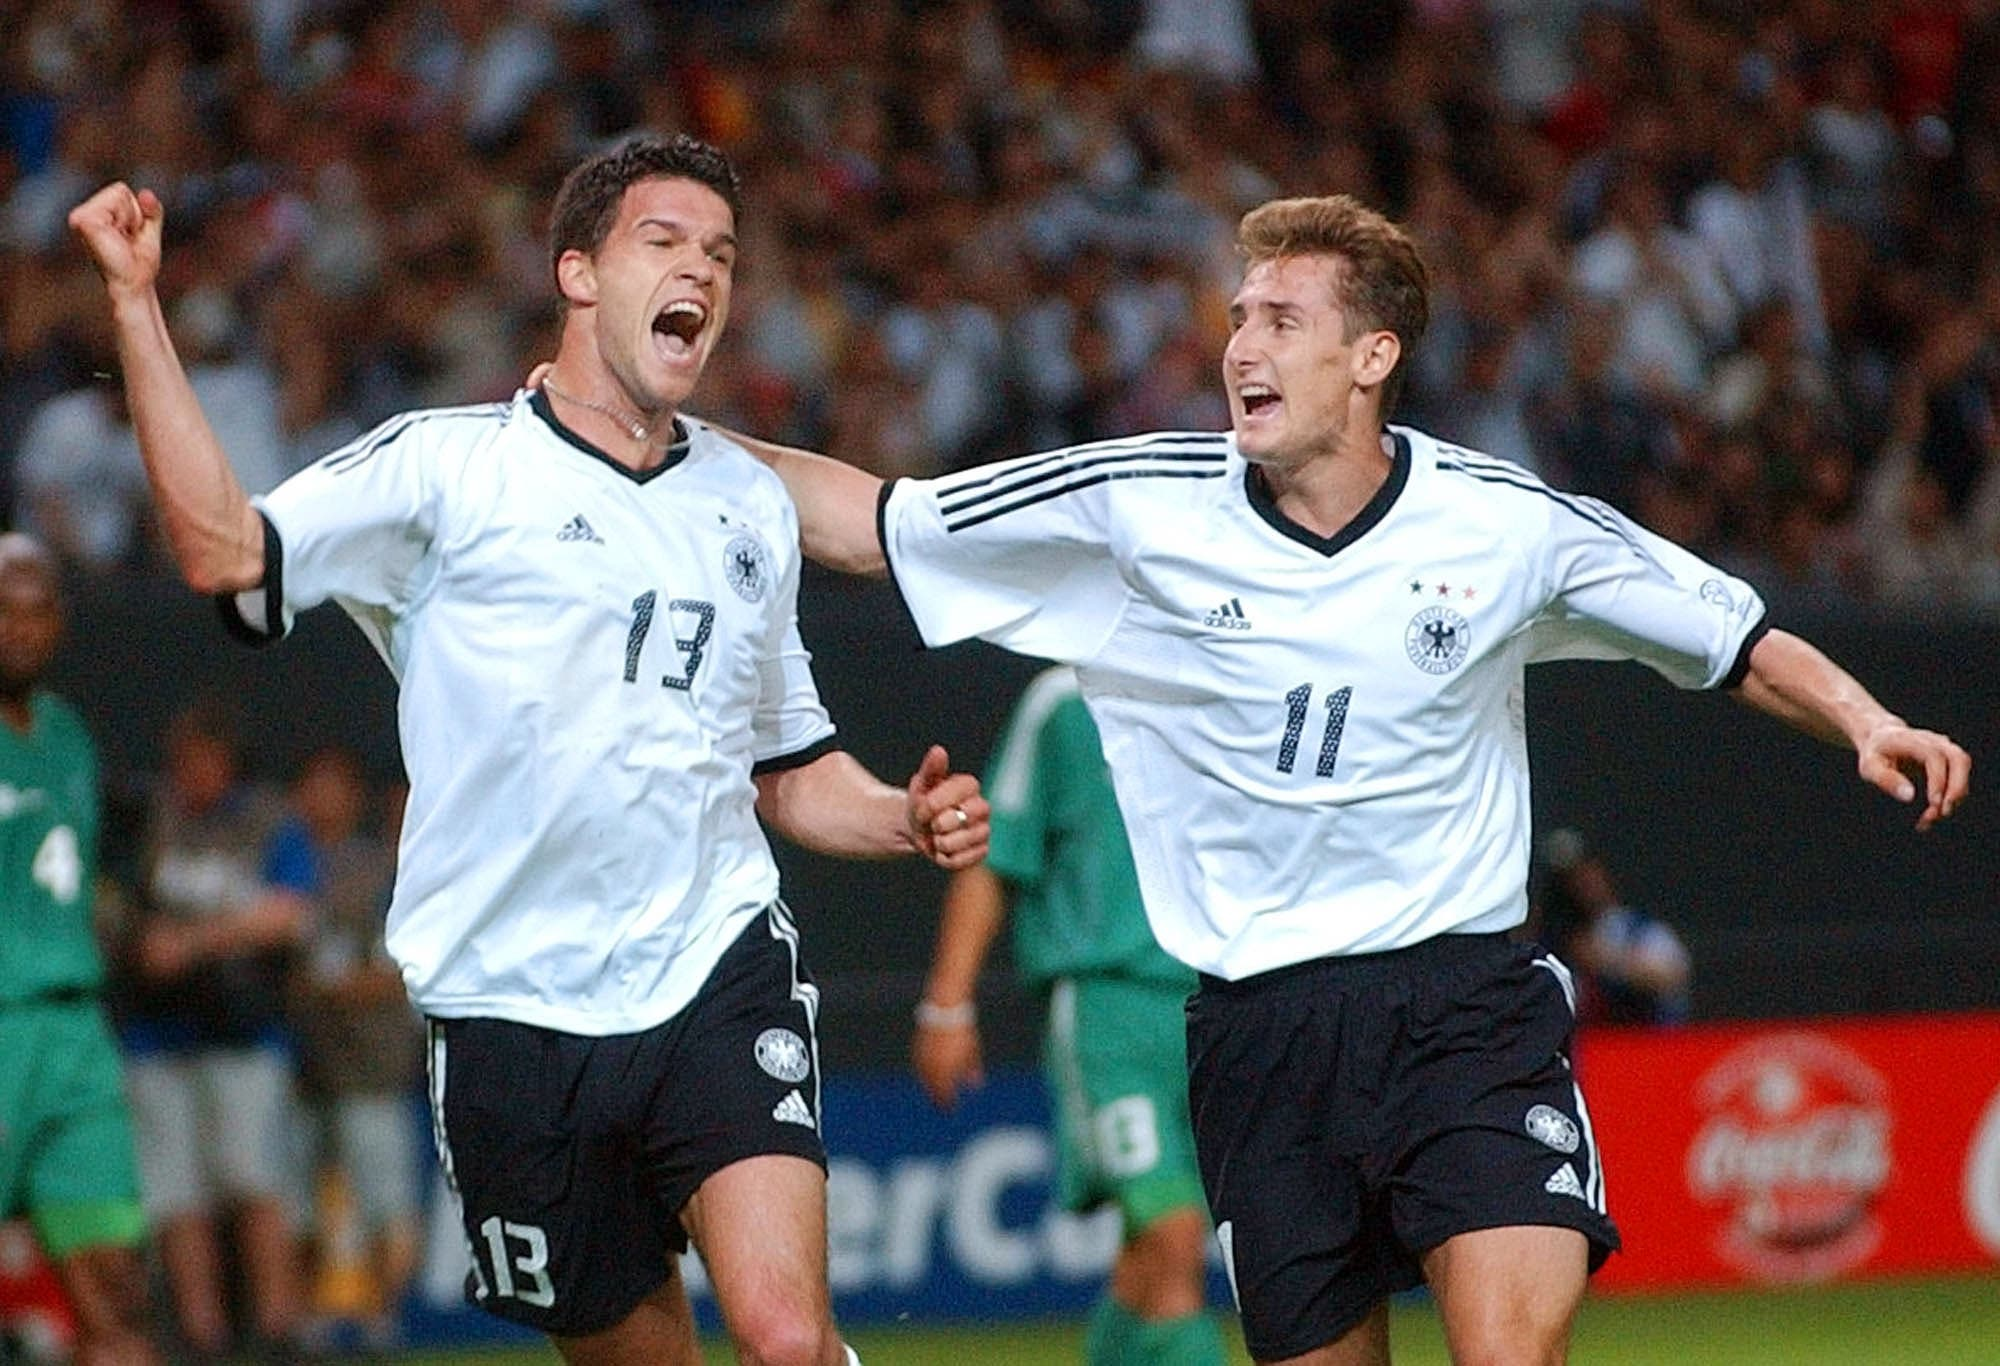 Germany's Michael Ballack, left, celebrates with teammate Miroslav Klose after scoring his sides third goal during the 2002 World Cup Group E soccer match between Germany and Saudi Arabia at the Sapporo Dome in Japan, Saturday June 1, 2002. The other teams in Group E are Ireland and Cameroon. (AP)